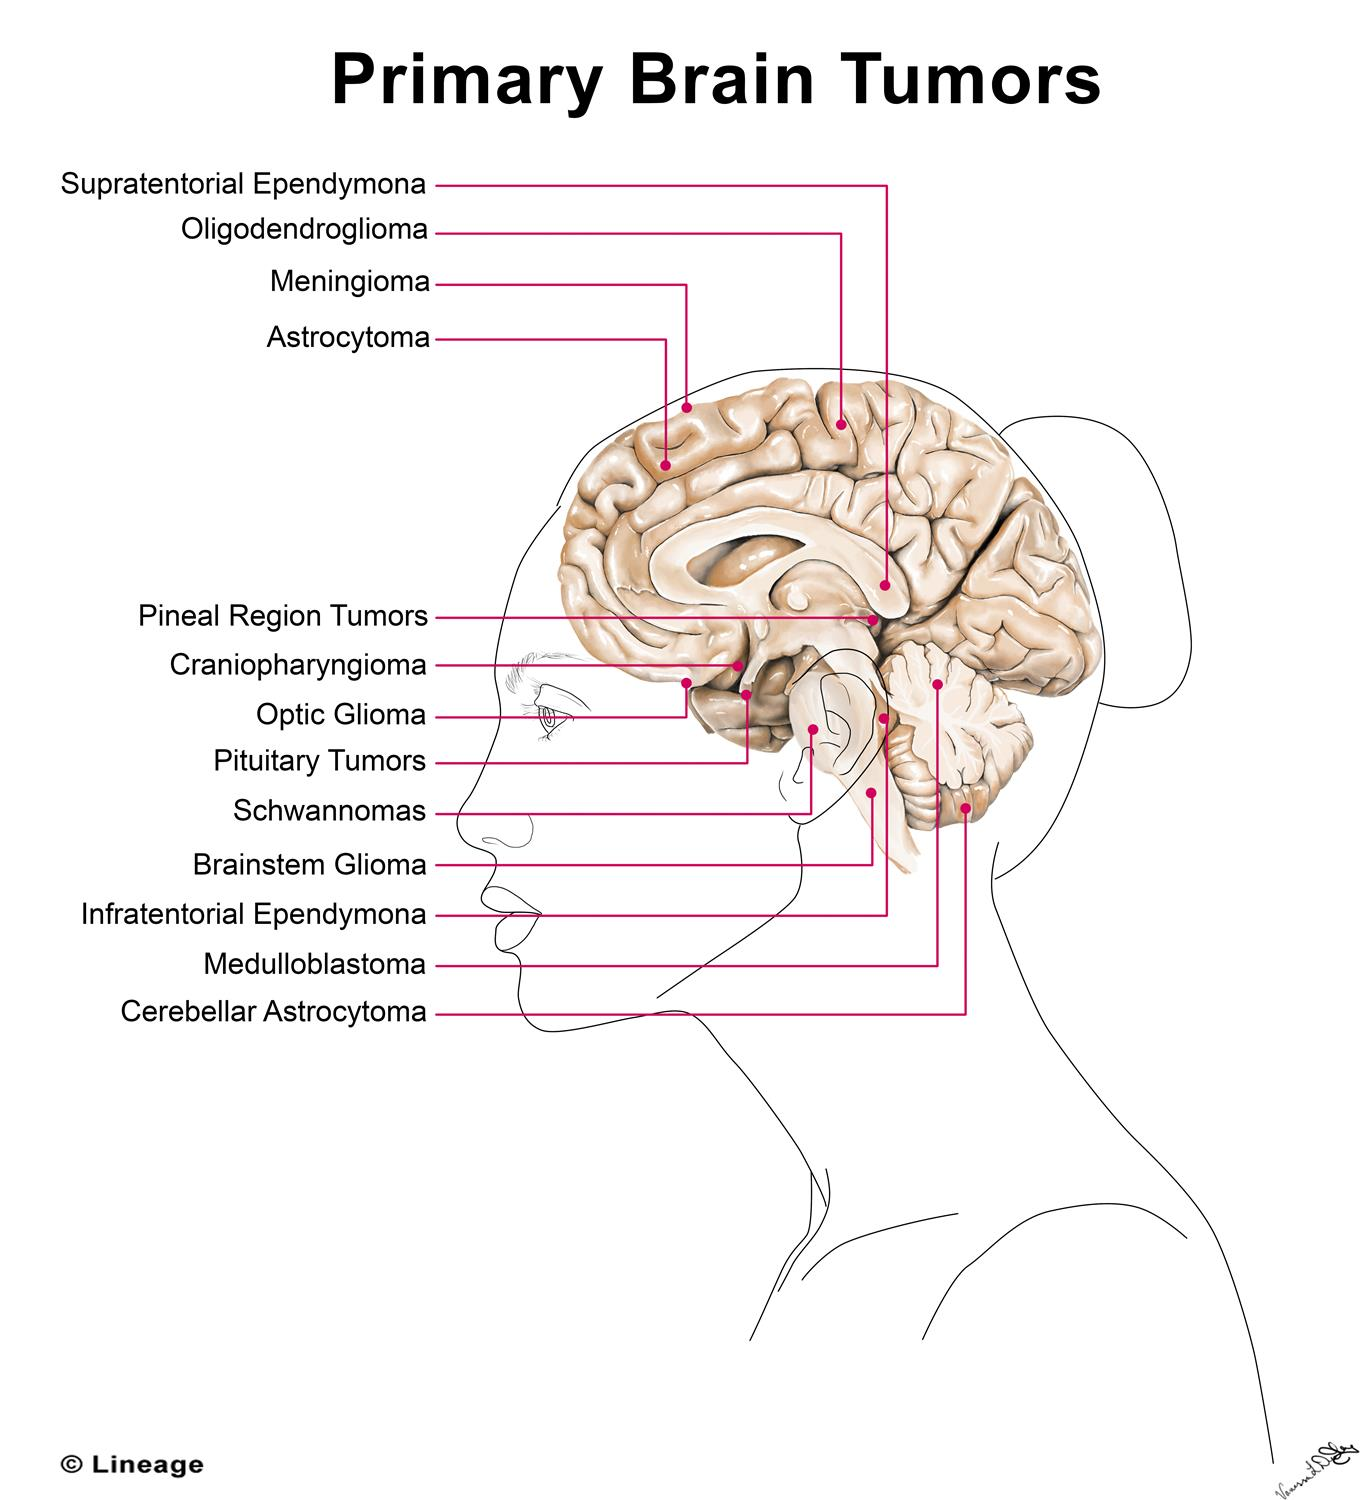 https://upload.medbullets.com/topic/113096/images/primary_brain_tumors.jpg